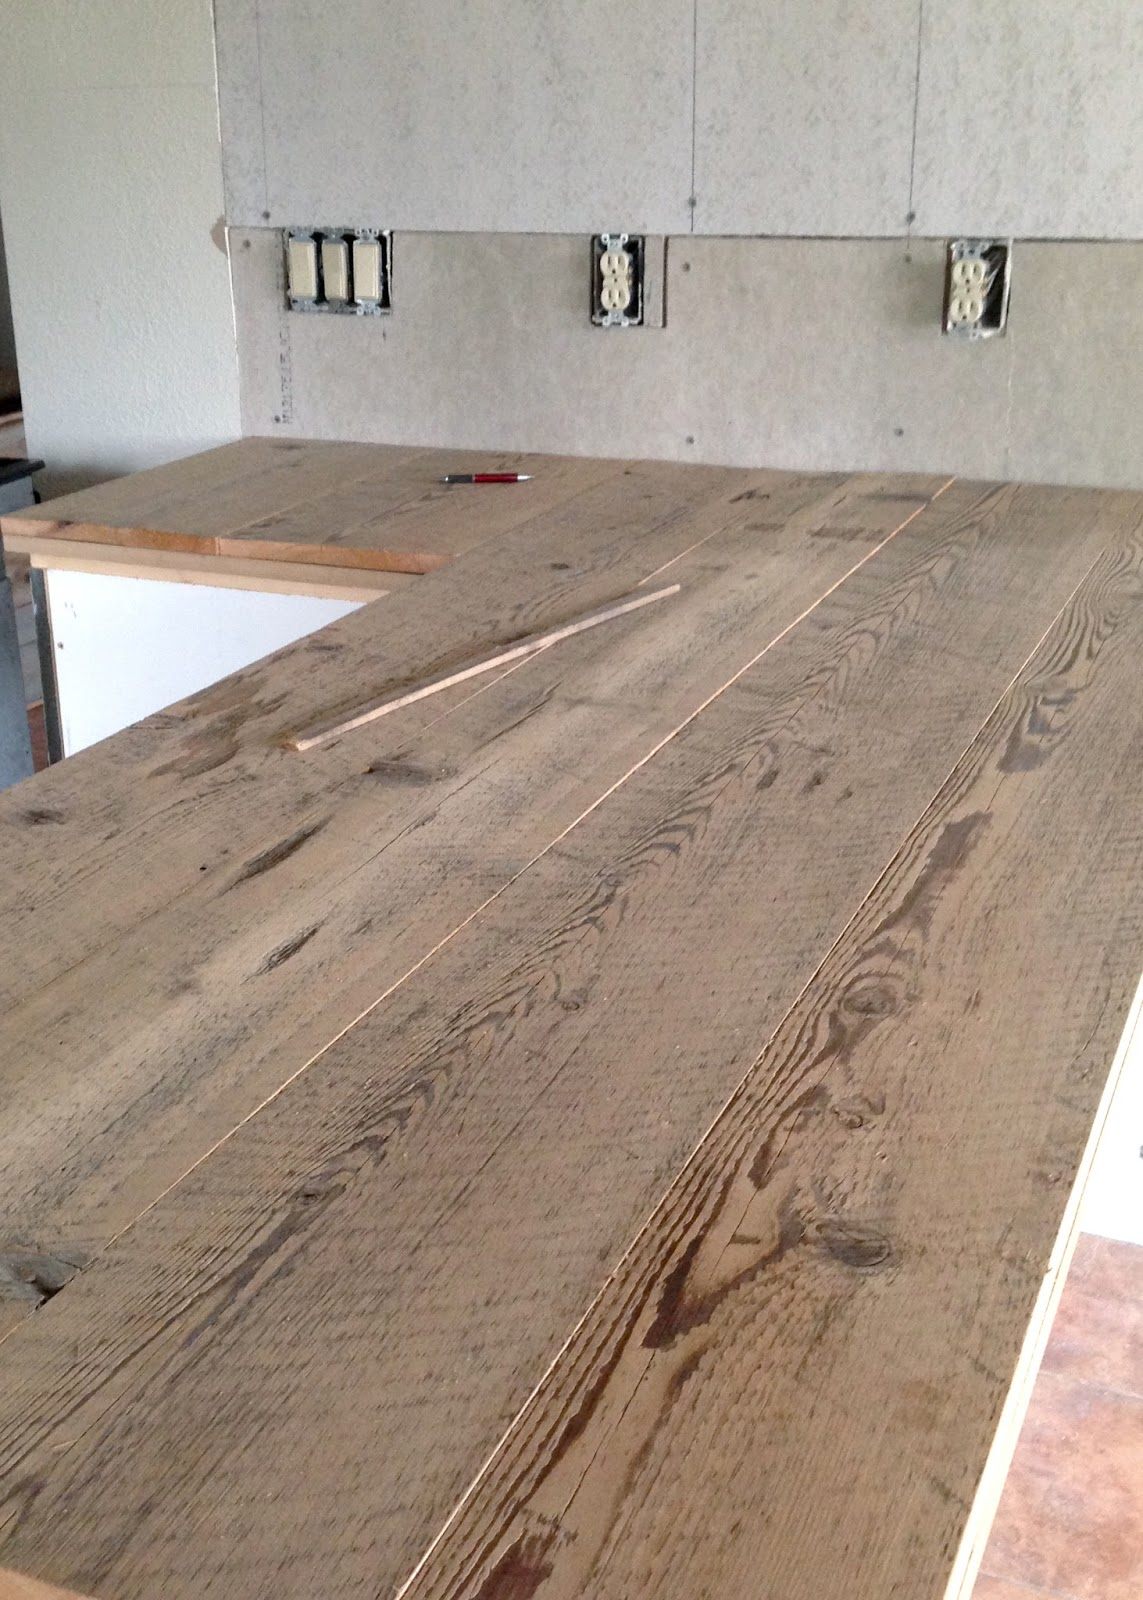 DIY Reclaimed Wood Countertop - gluing and nailing down reclaimed wood  boards - DIY Reclaimed Wood Countertop Averie Lane: DIY Reclaimed Wood